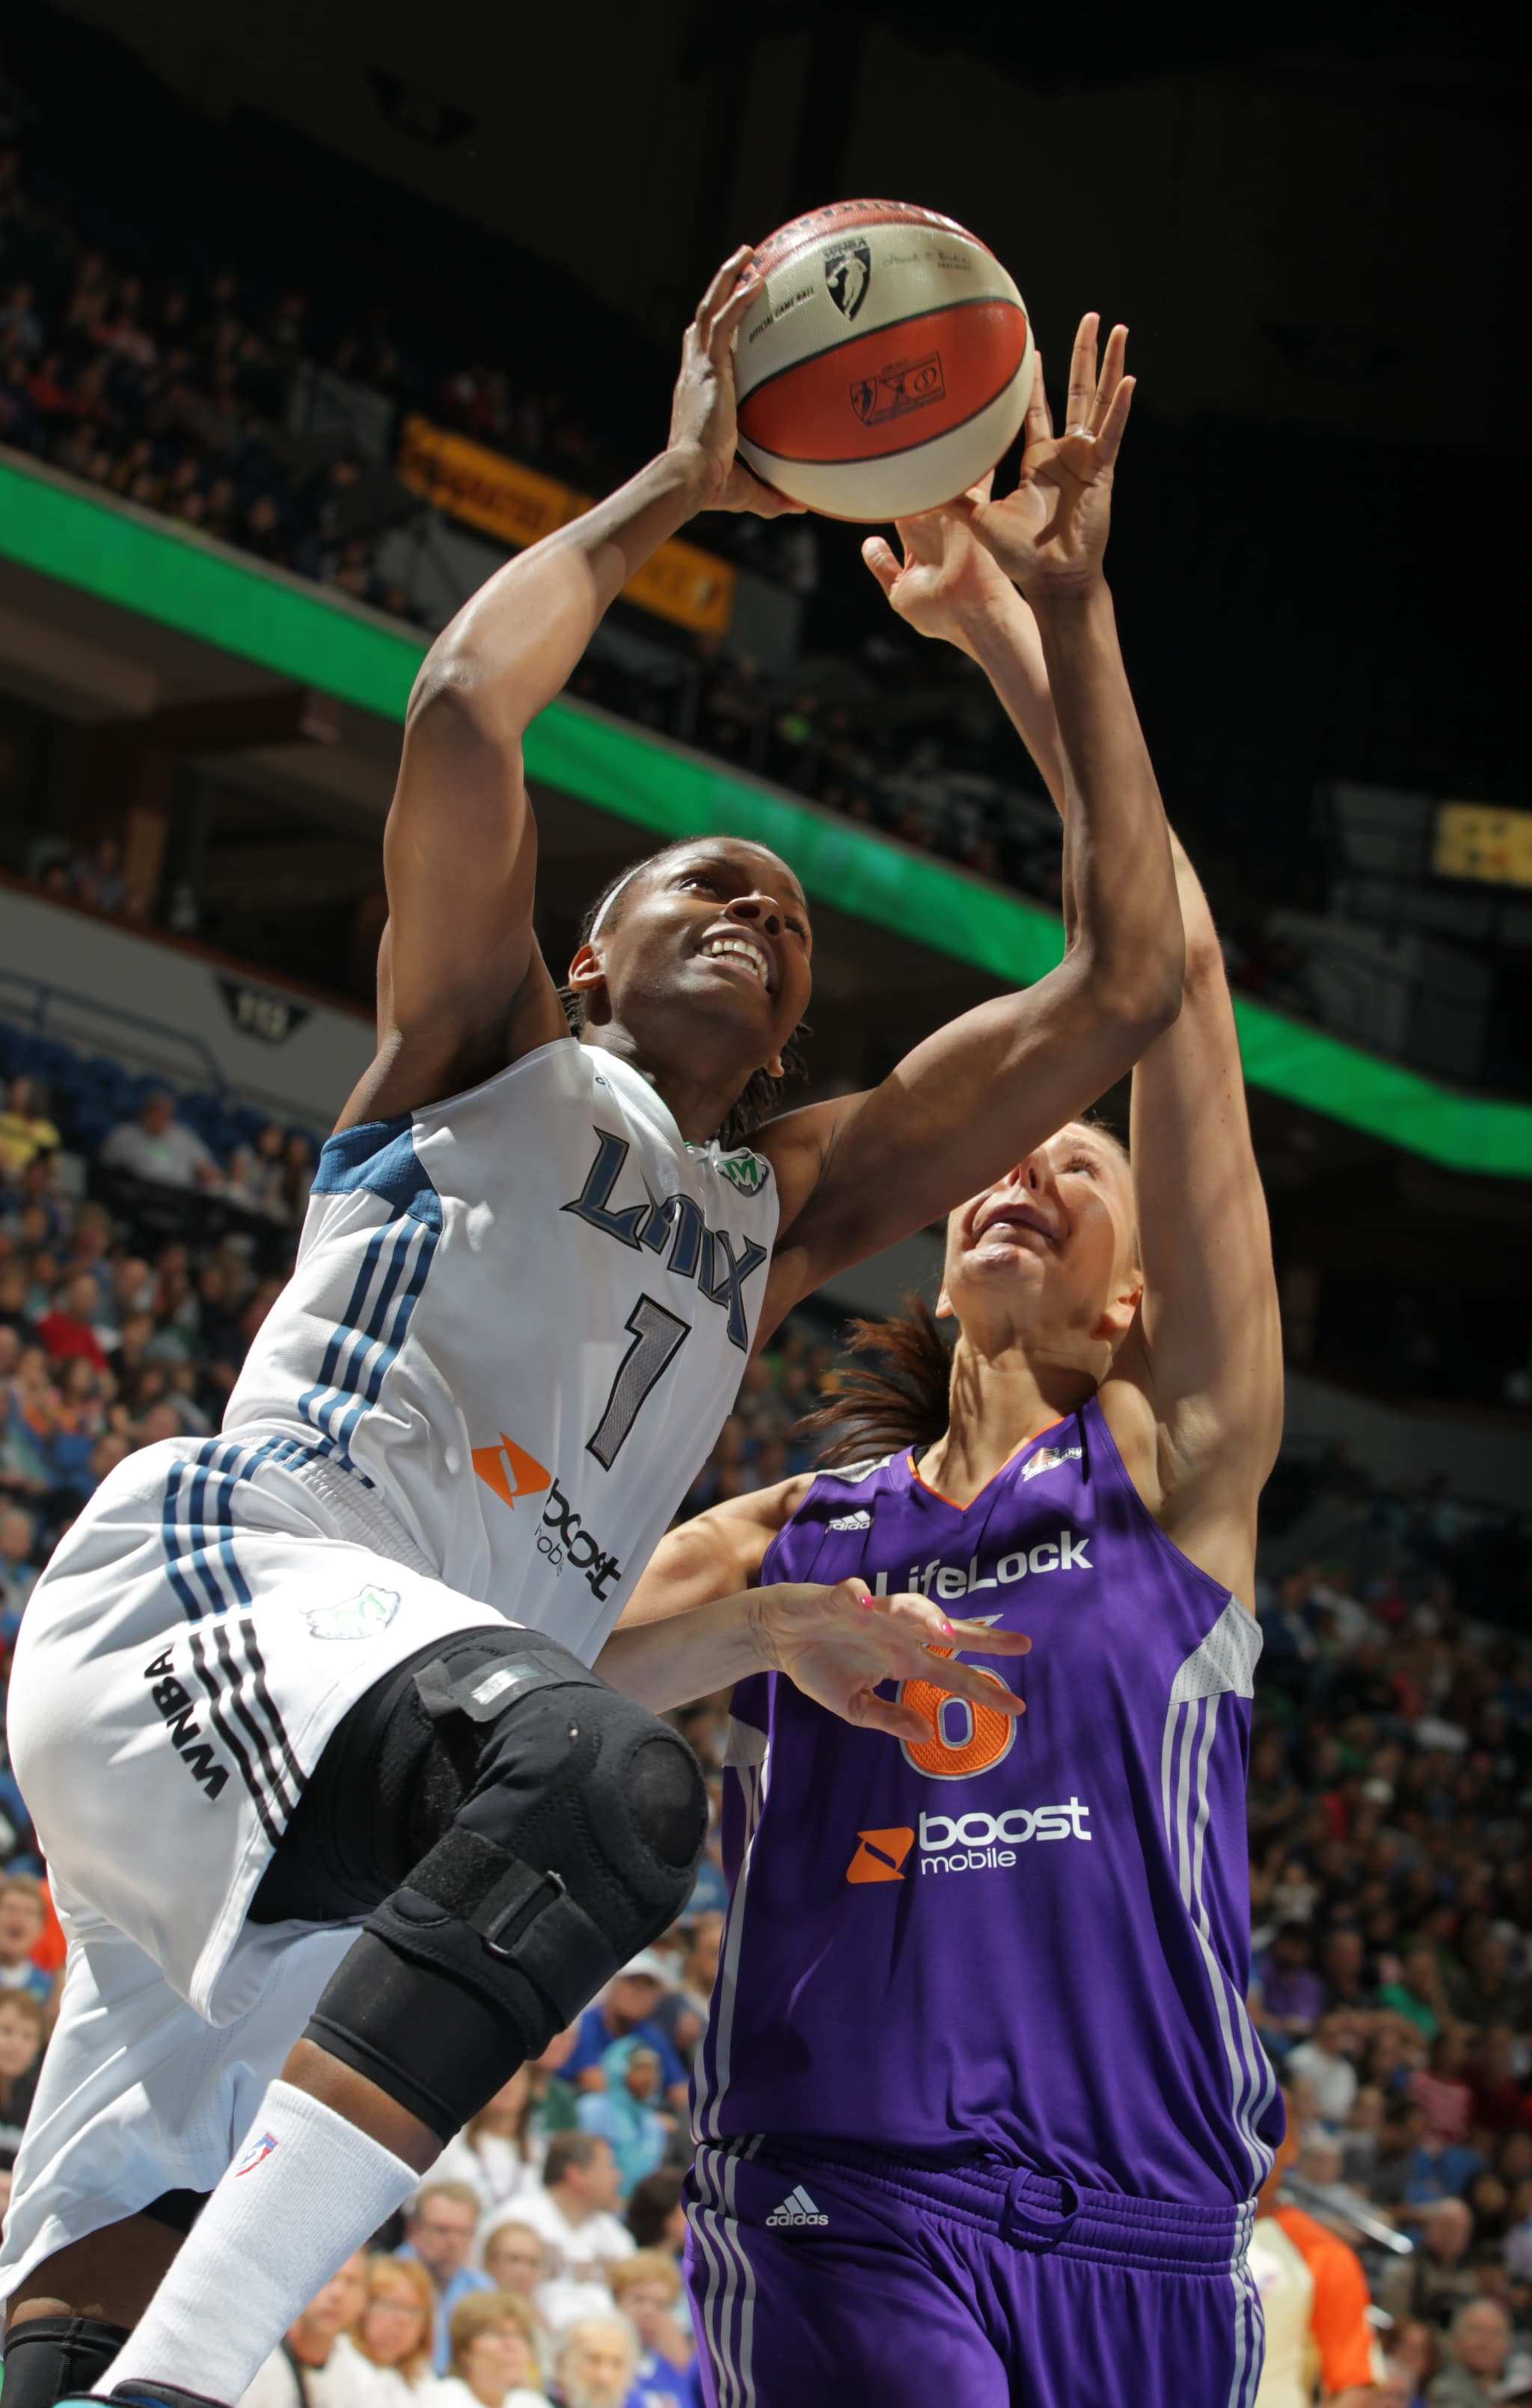 2012's Home-Opener: Lynx center Jessica Adair came off the bench to score nine points and grab rebounds in the Lynx's 105-83 blowout of the Phoenix Mercury